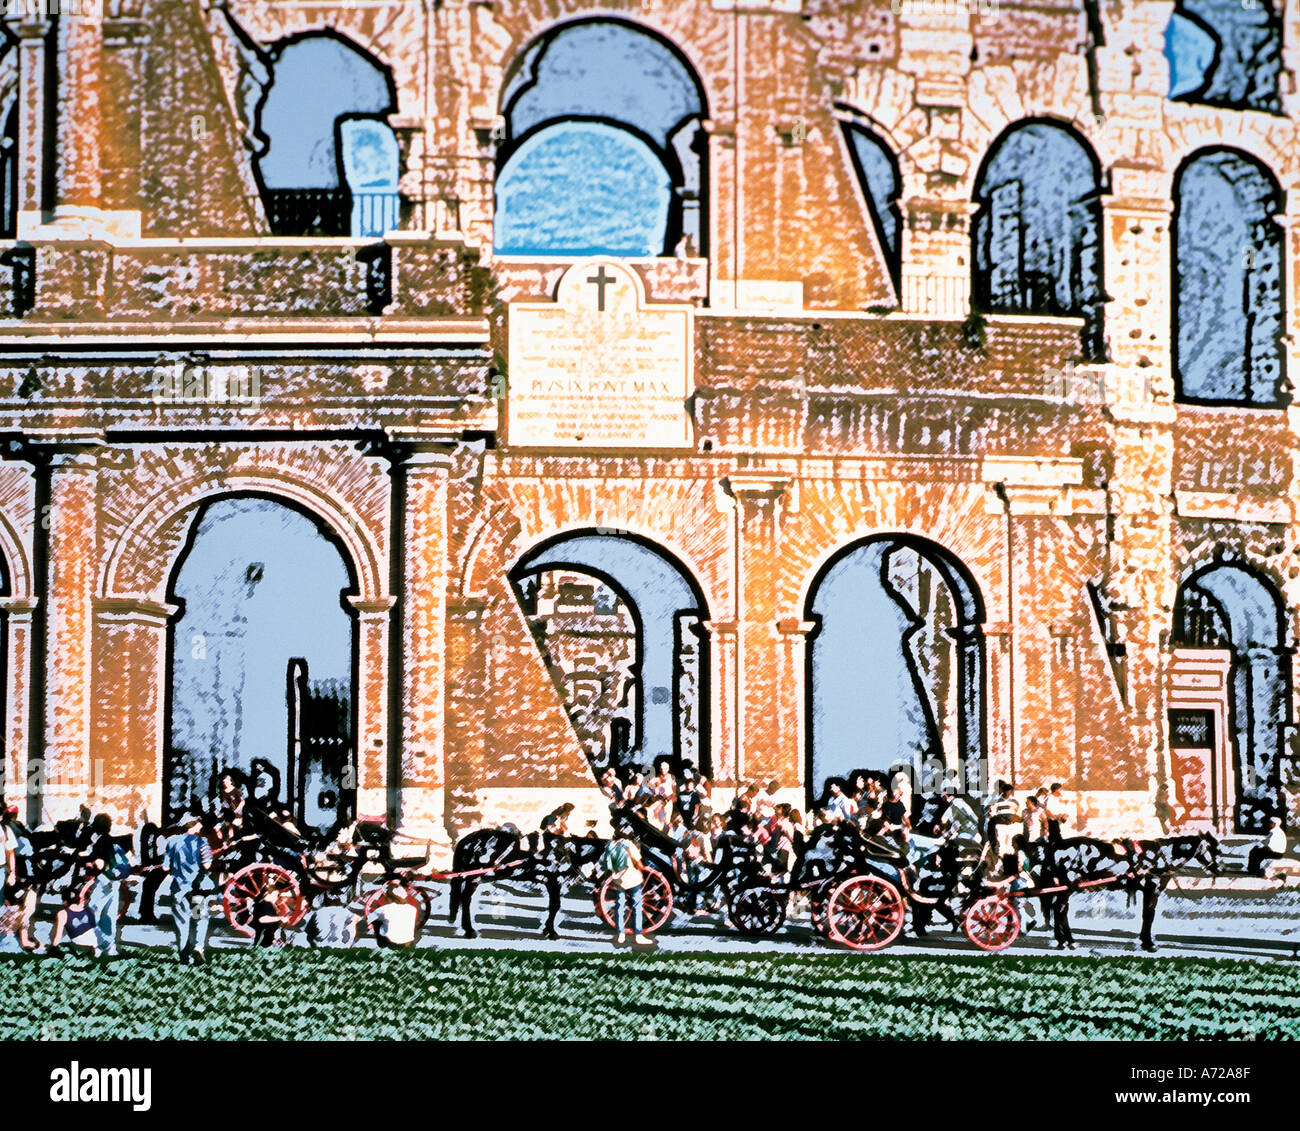 Abstract art of The Colosseum in Rome Italy - Stock Image